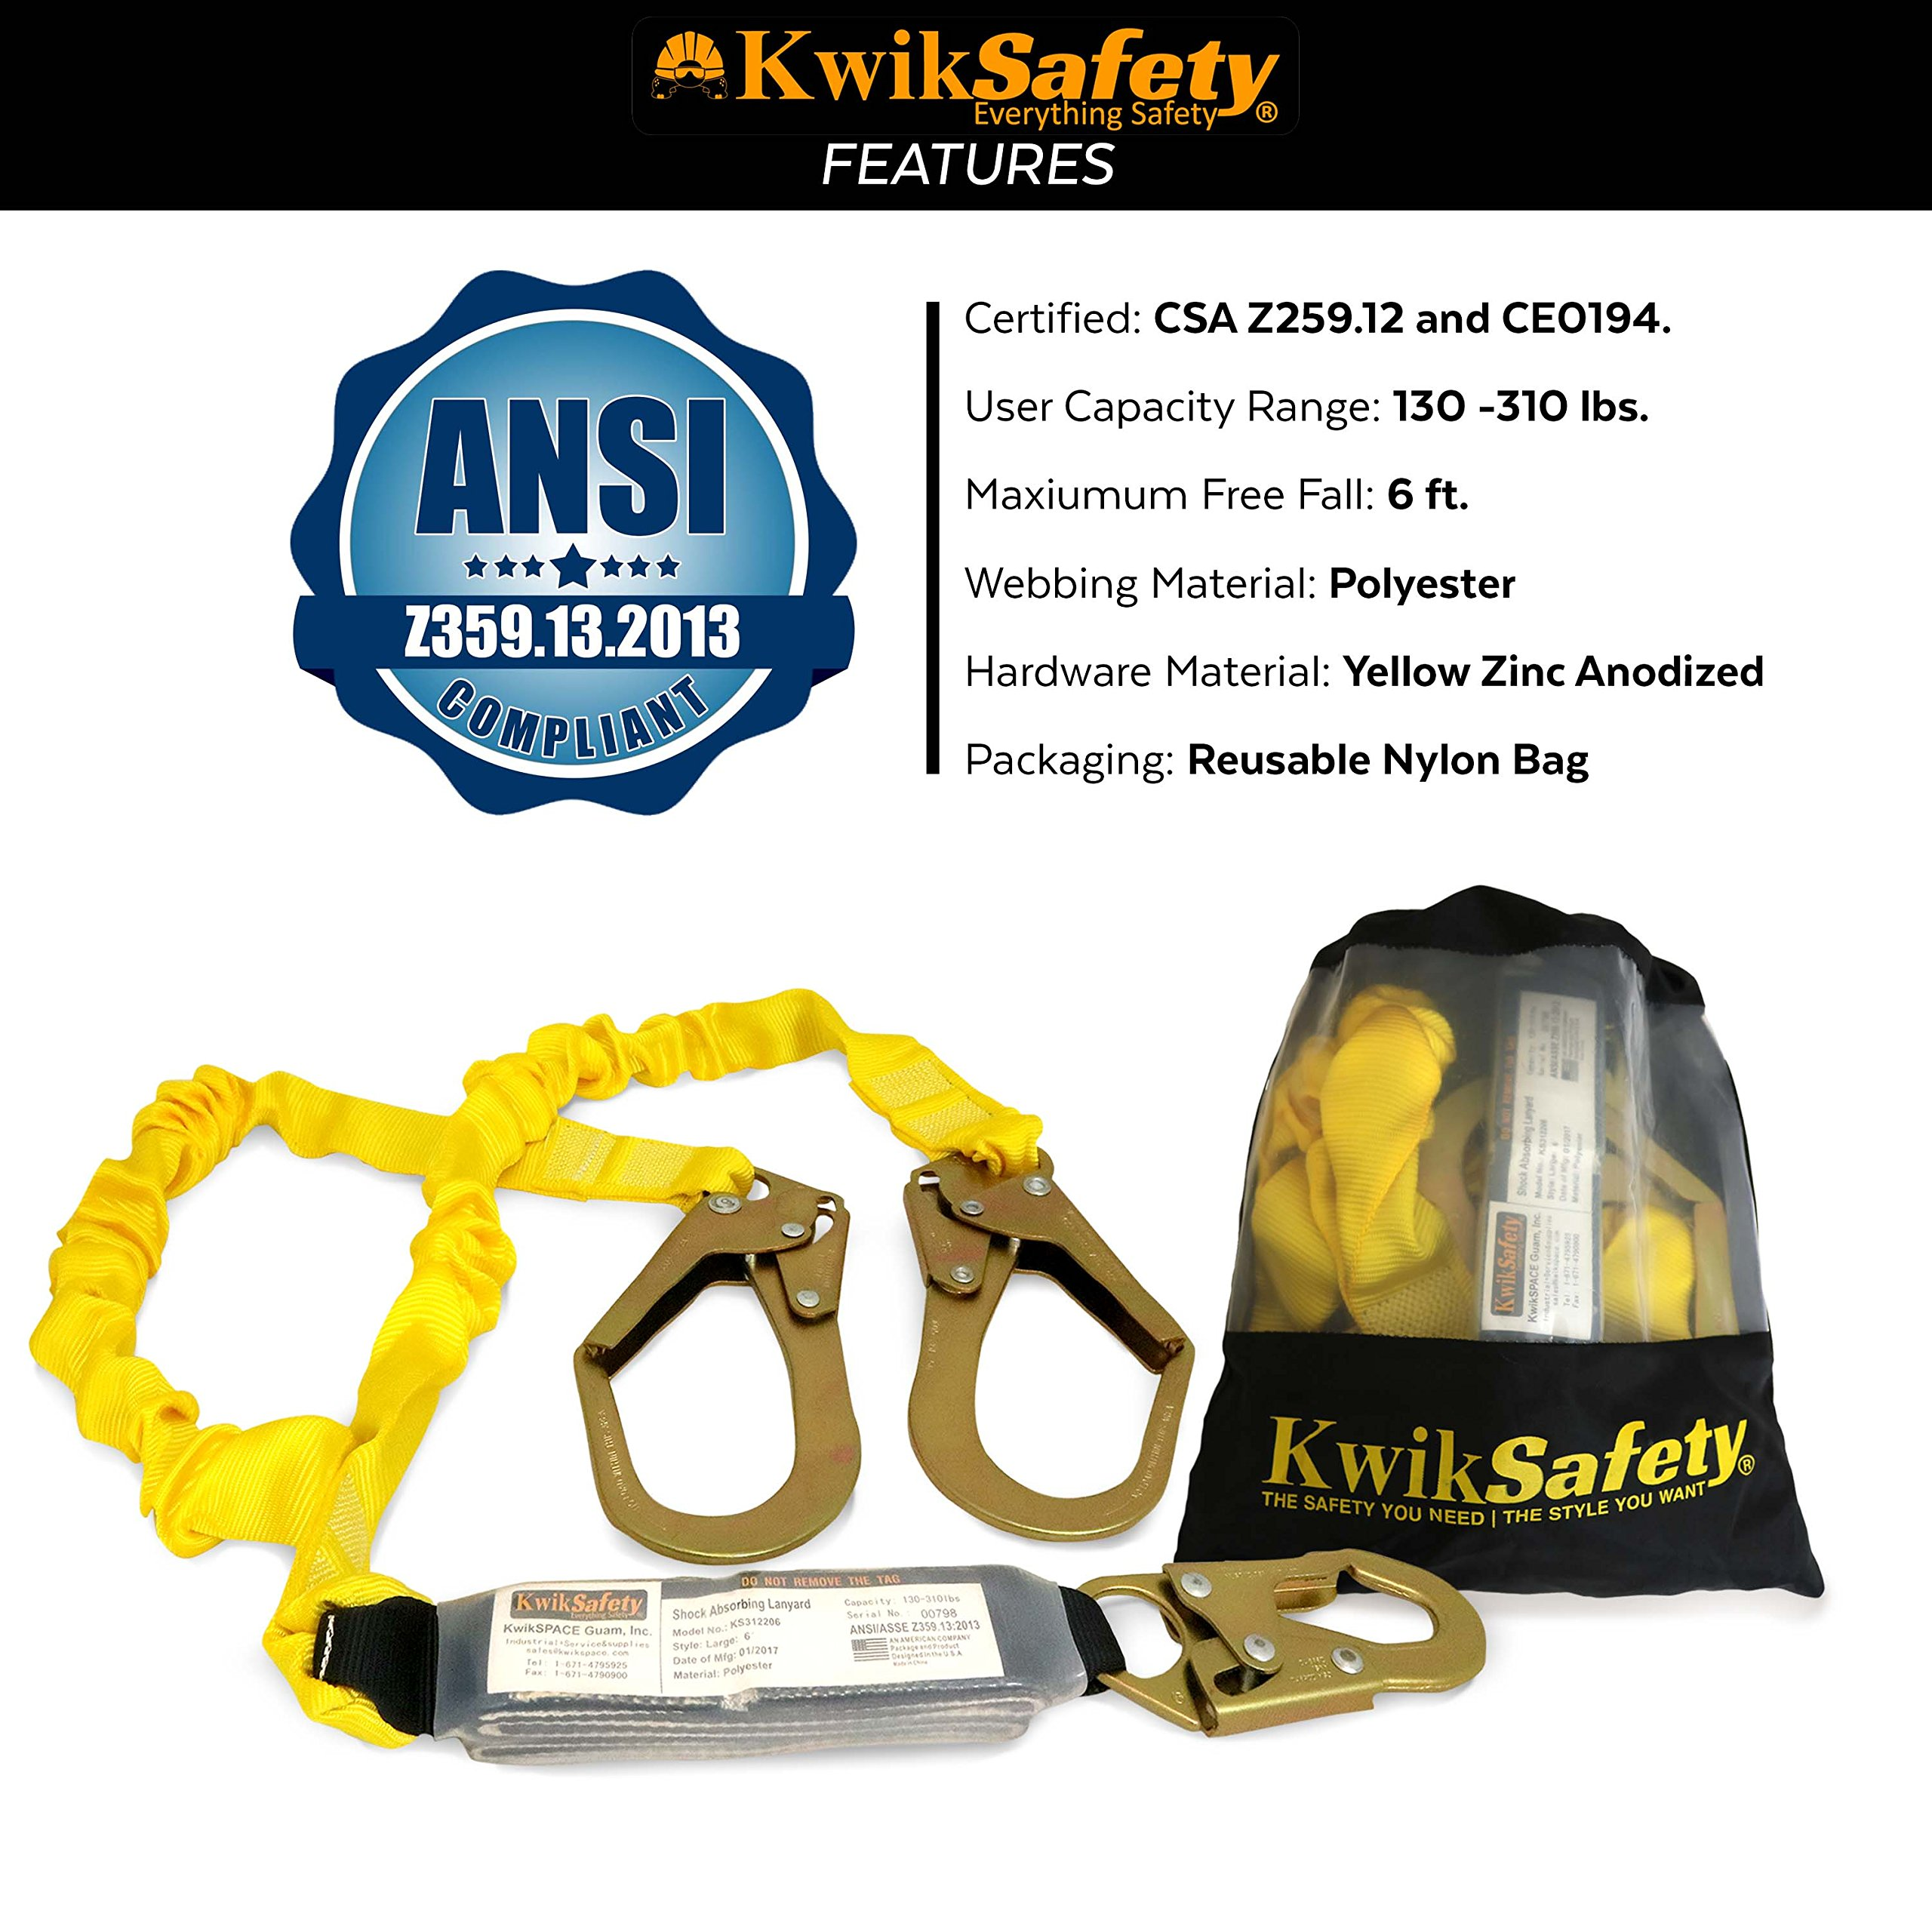 KwikSafety PYTHON   Double Leg 6ft Tubular Stretch Safety Lanyard   OSHA Approved ANSI Compliant Fall Protection   EXTERNAL Shock Absorber   Construction Arborist Roofing   Snap & Rebar Hook Connector by KwikSafety (Image #7)